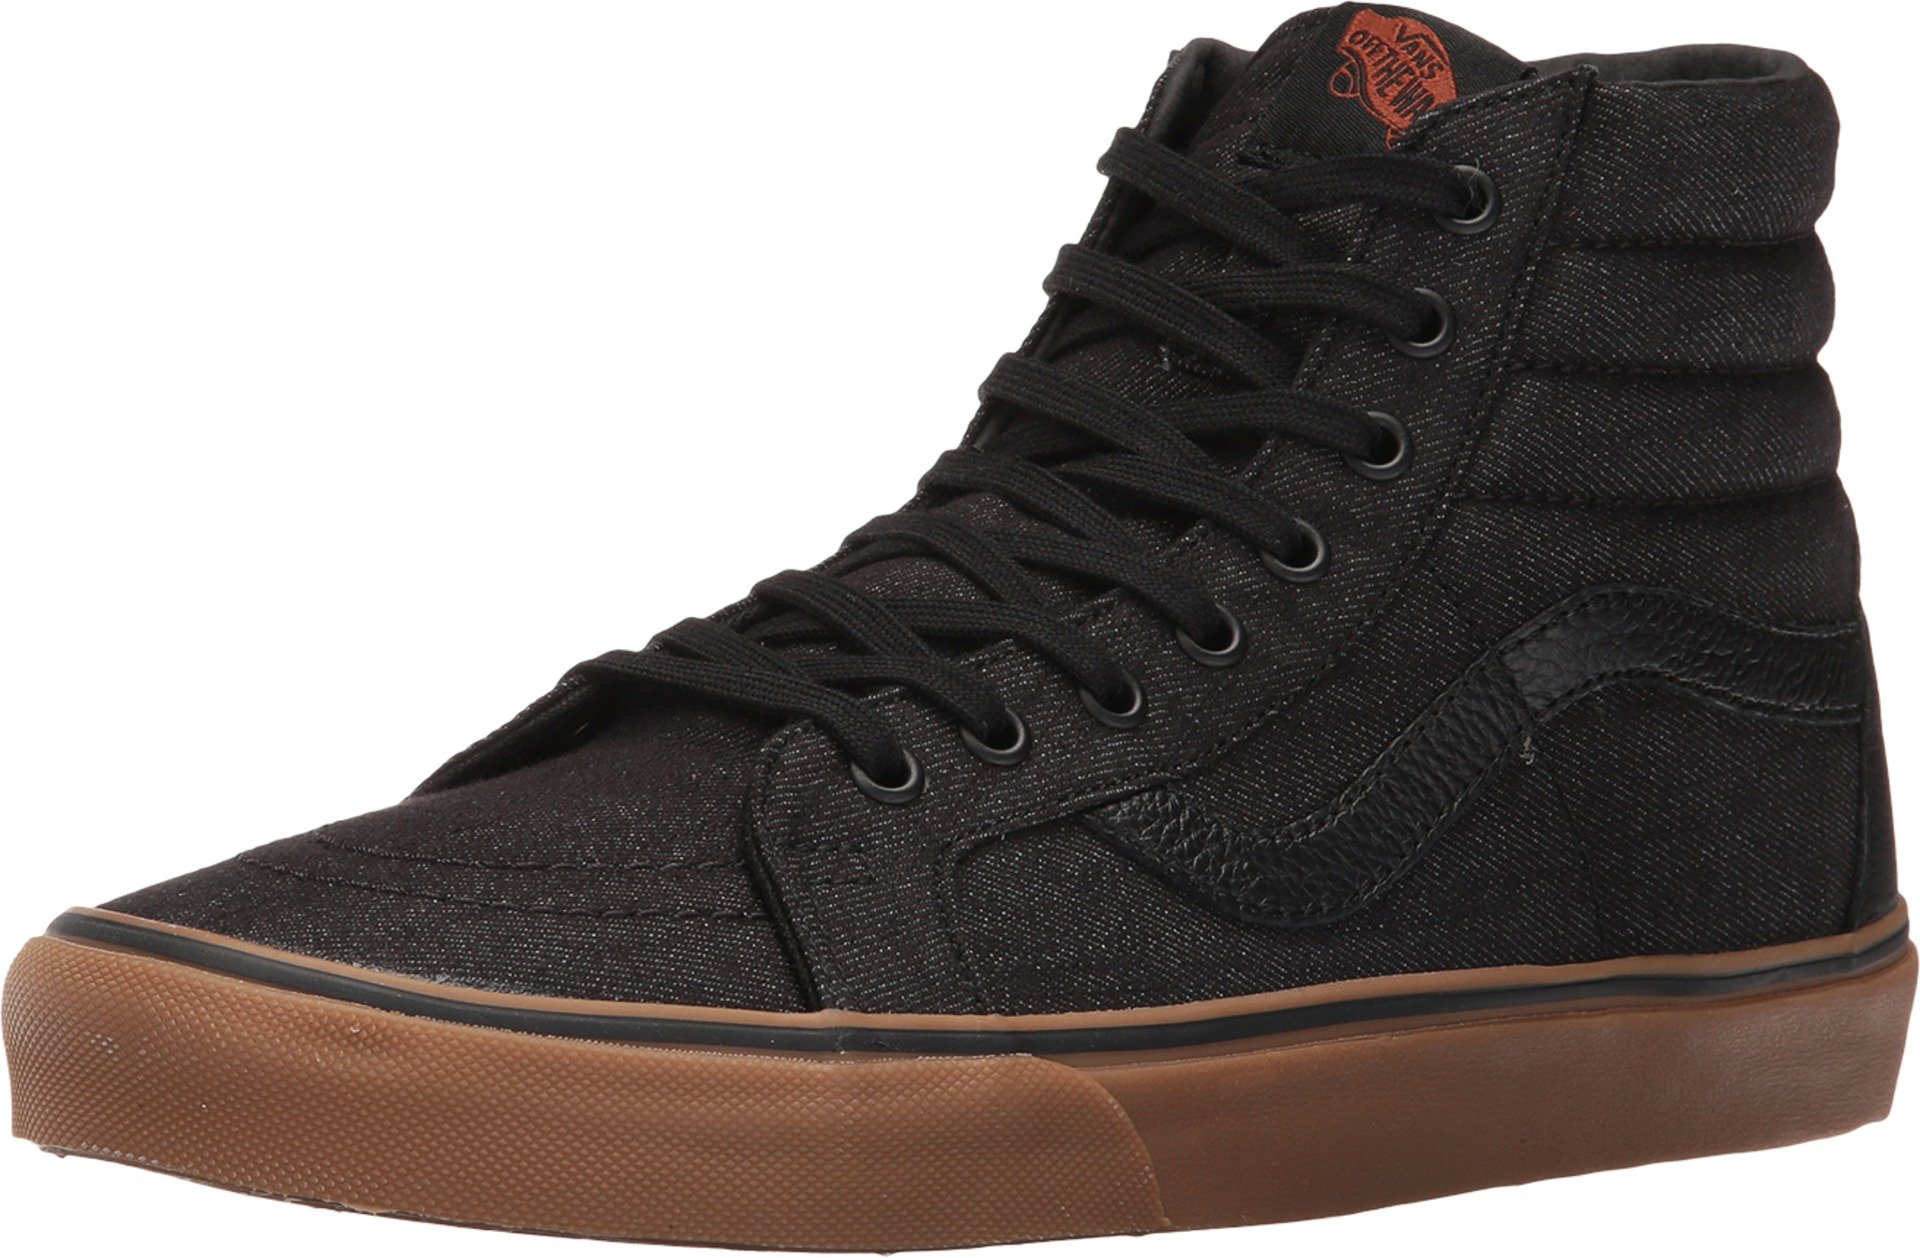 1fb9034376 Galleon - Vans Mens SK8-HI Reissue Denim C&L Sneaker Black/Gum Size 11